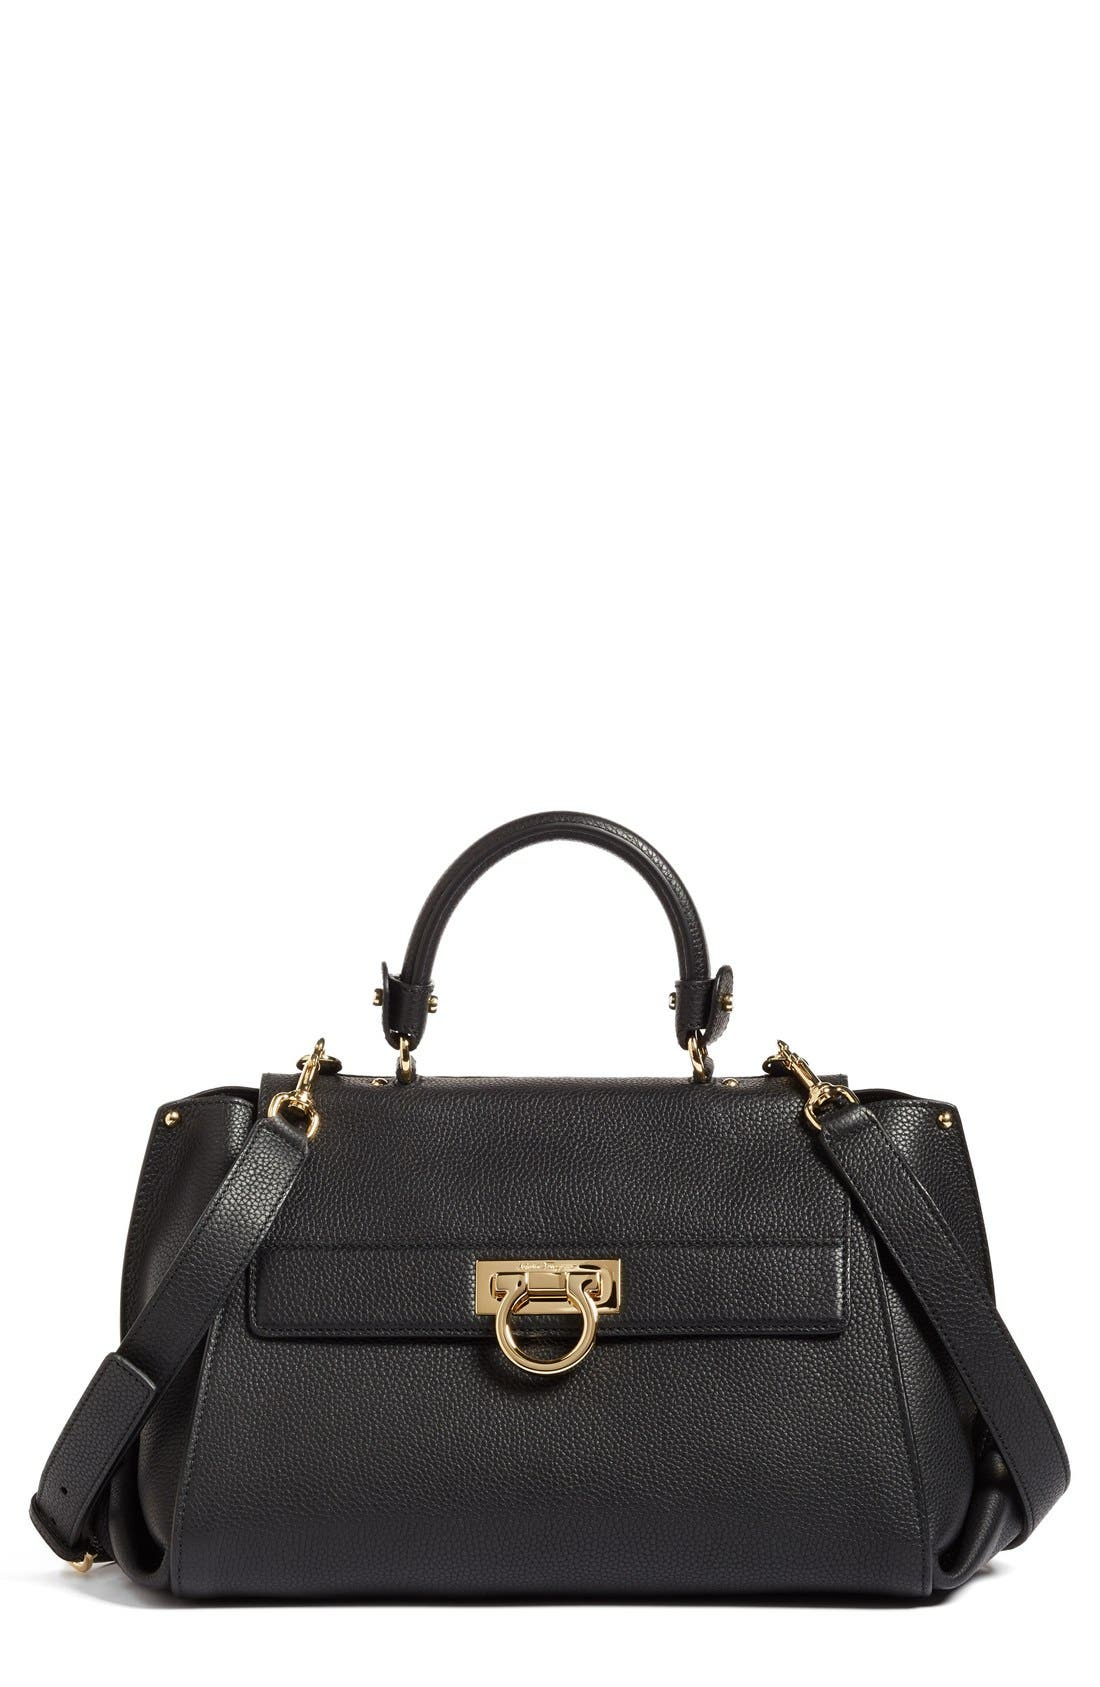 Salvatore Ferragamo Medium Pebbled Leather Satchel